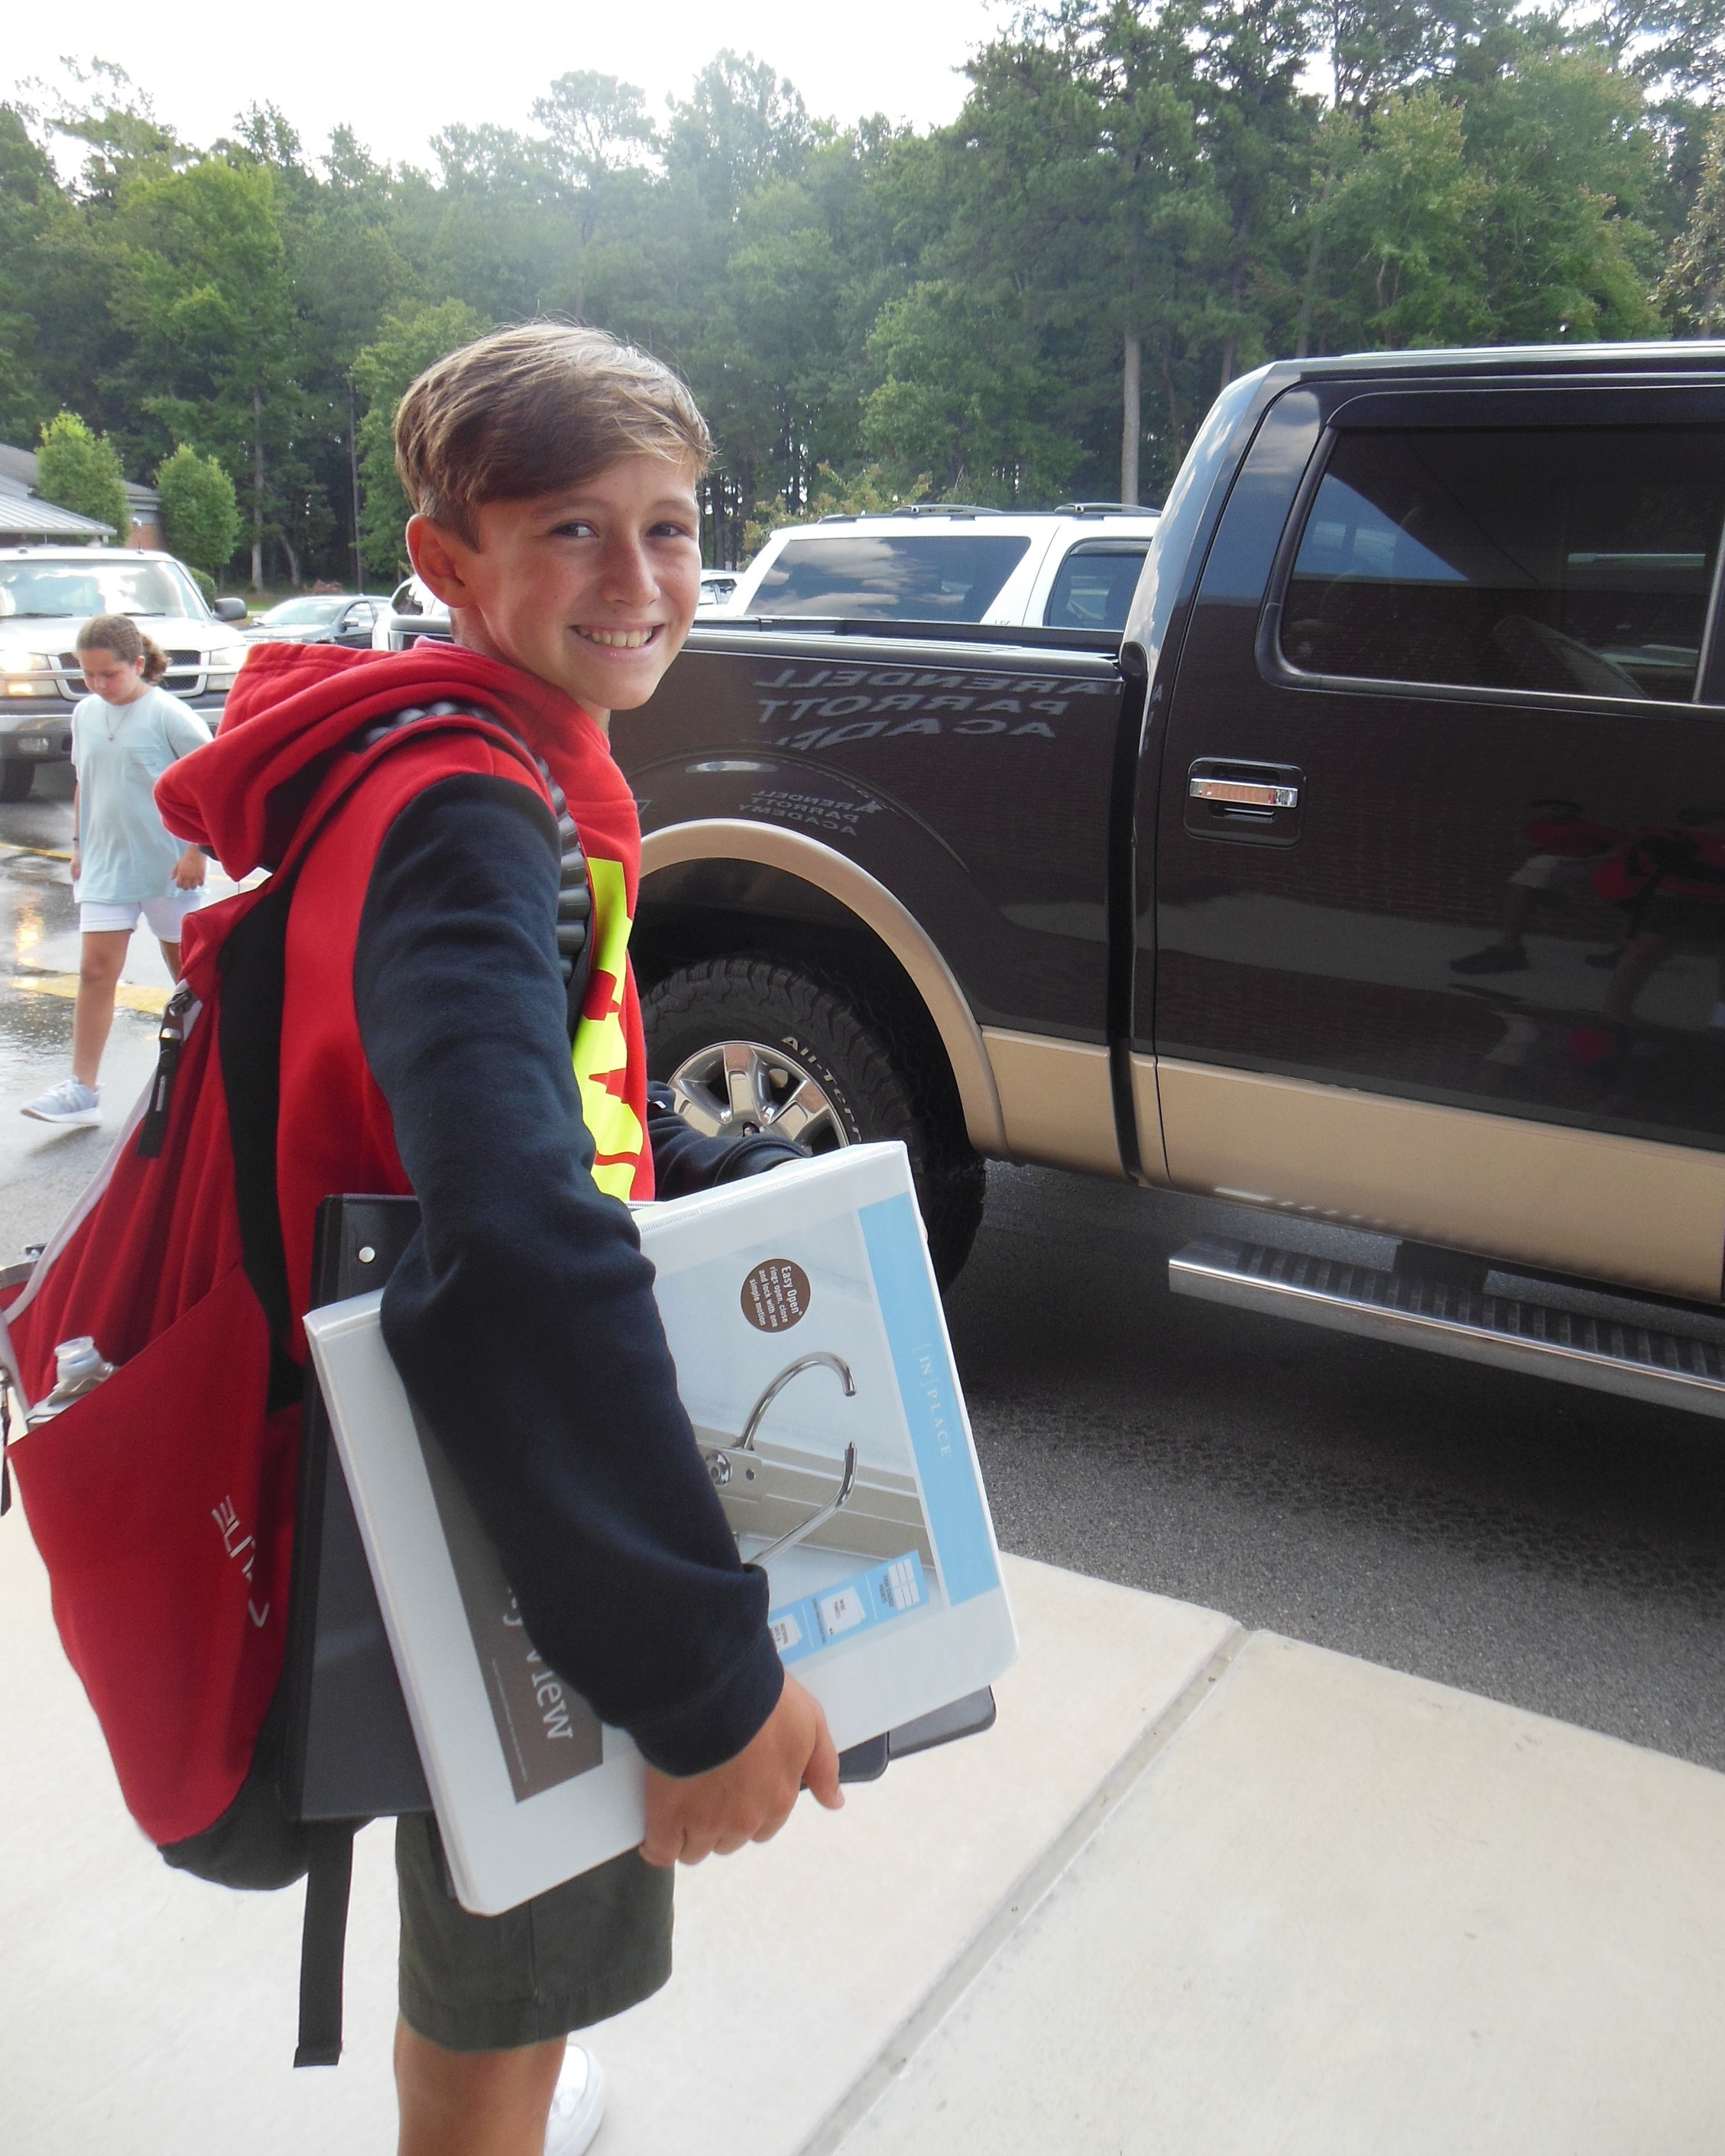 Ready to head home after his first day of middle school, 6th grader David Dunn waits to be picked up.